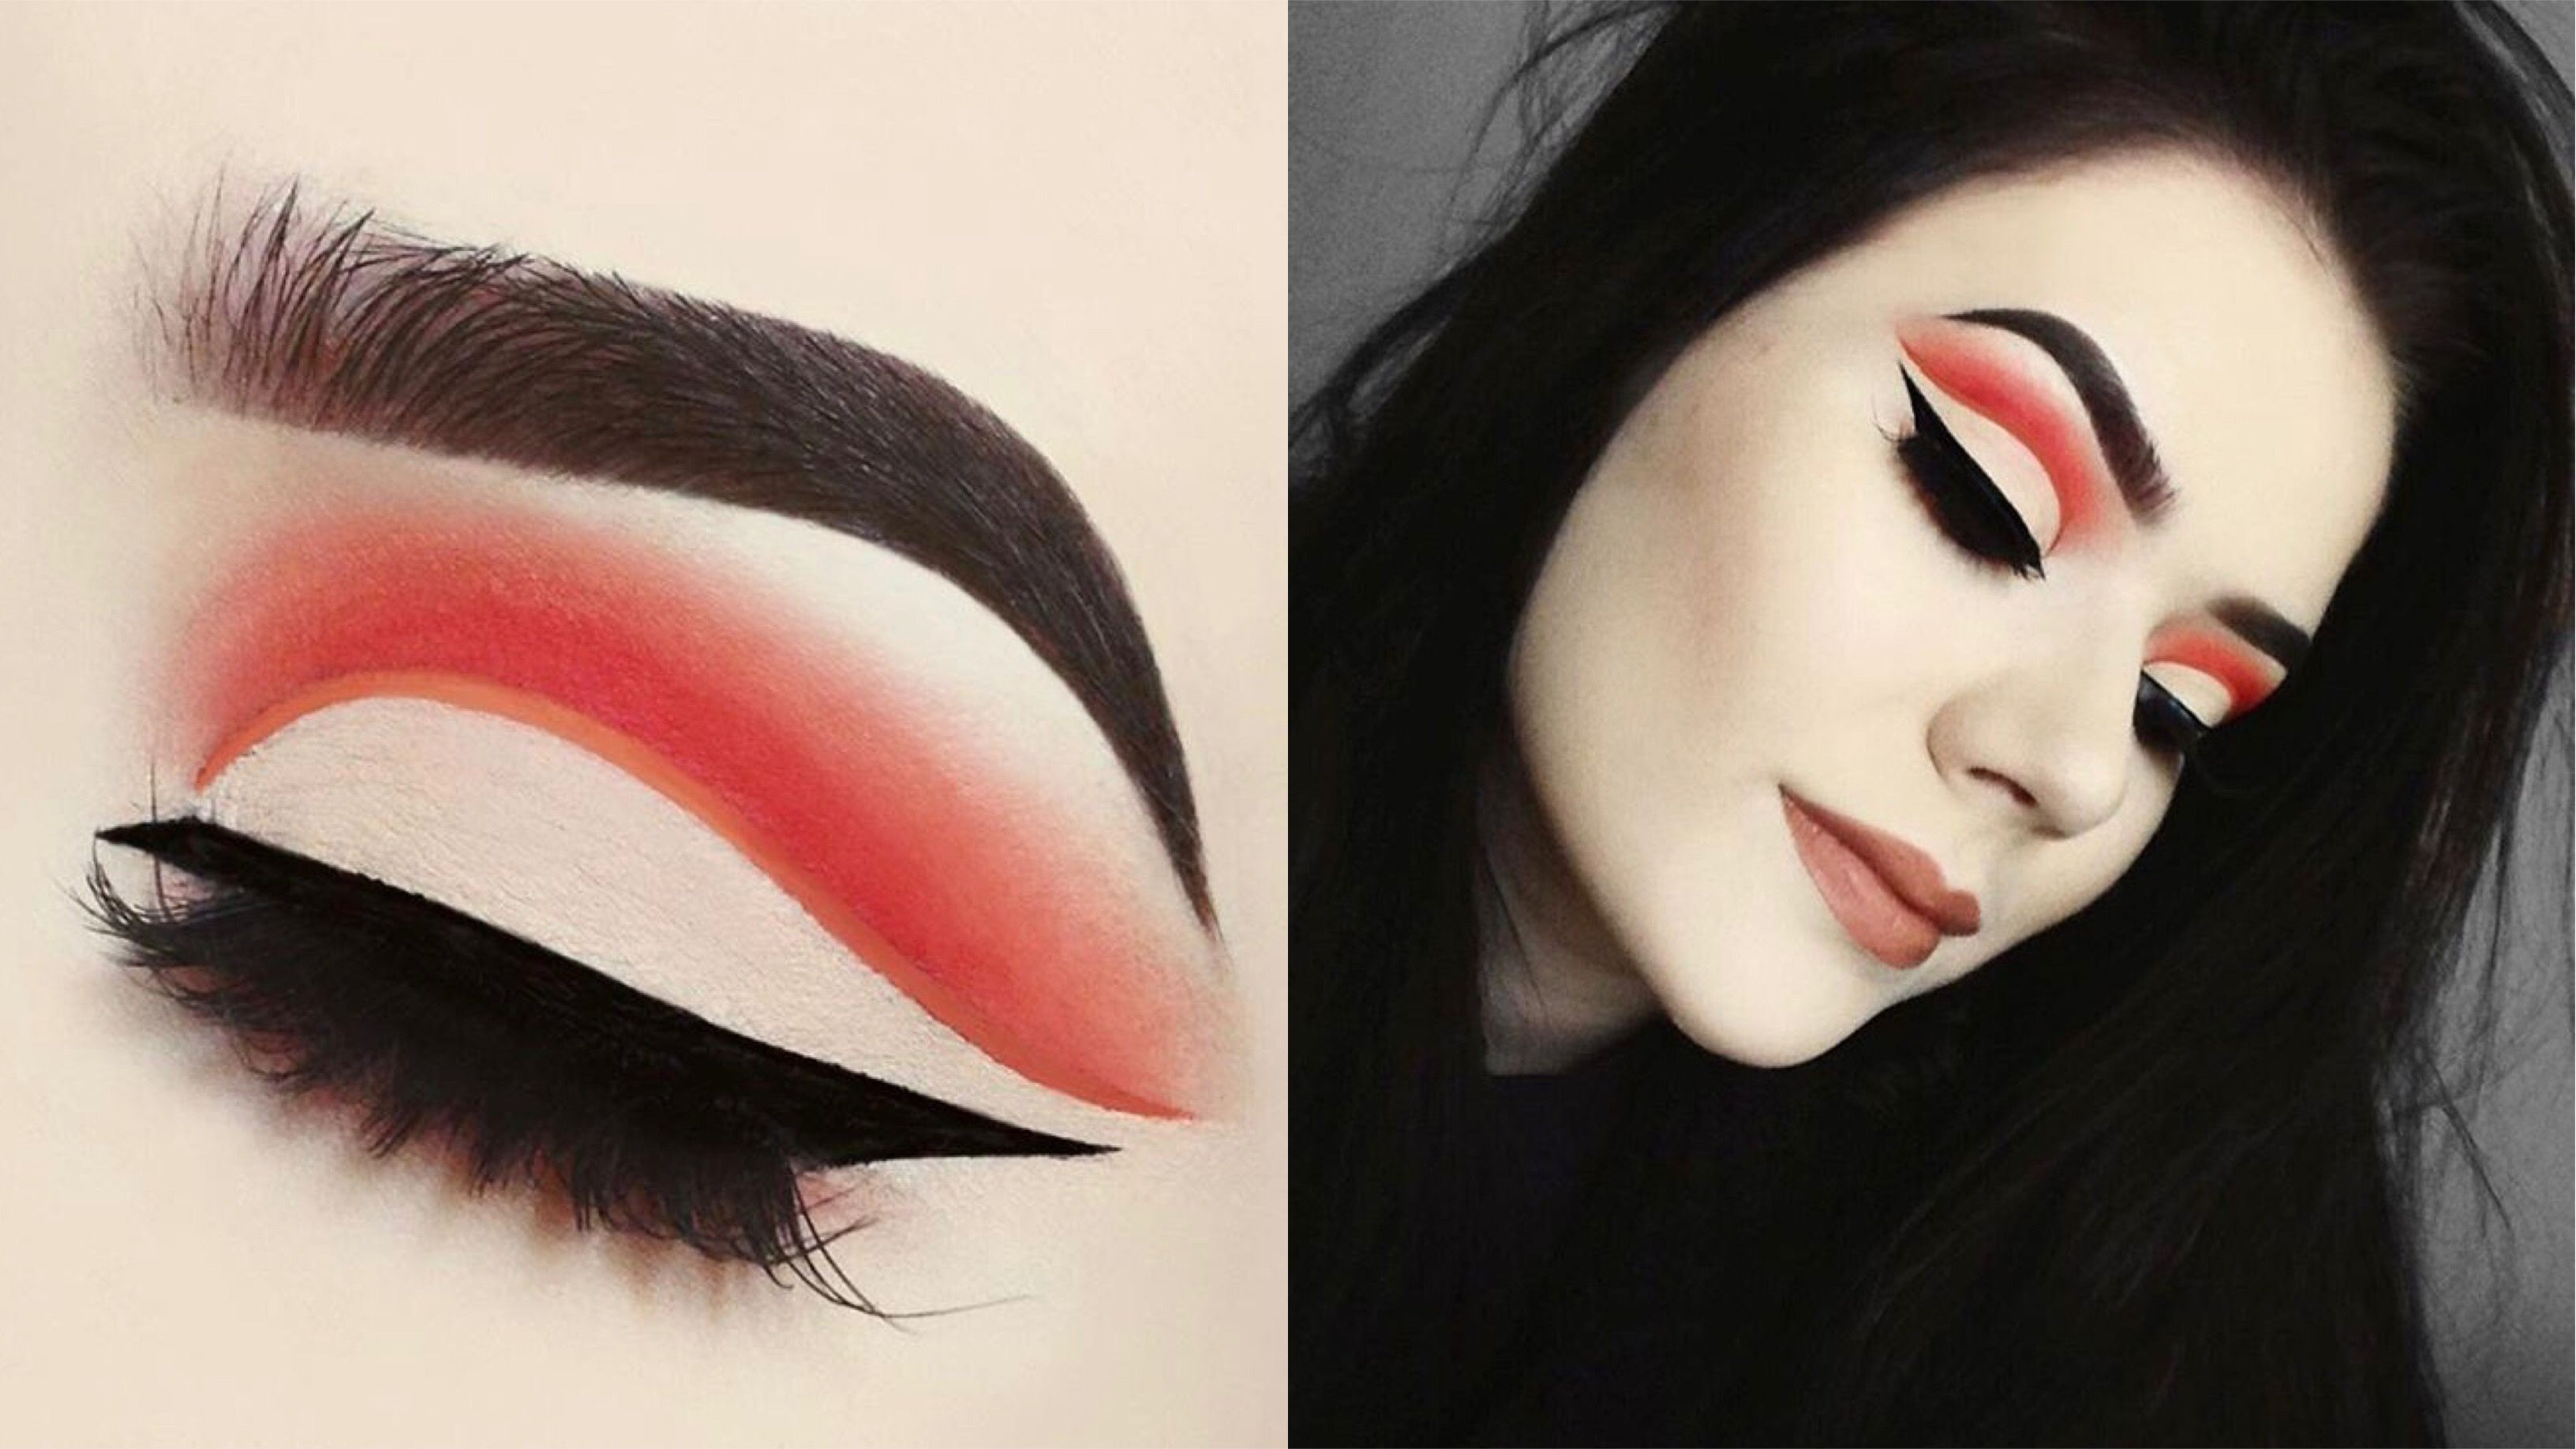 Eye Makeup And Blepharitis Eye Makeup Glam How Much Does Mac Charge For Eye Makeup Eye Makeup Q Tips In In 2020 Eye Makeup Pictures Eye Makeup Eye Makeup Tutorial